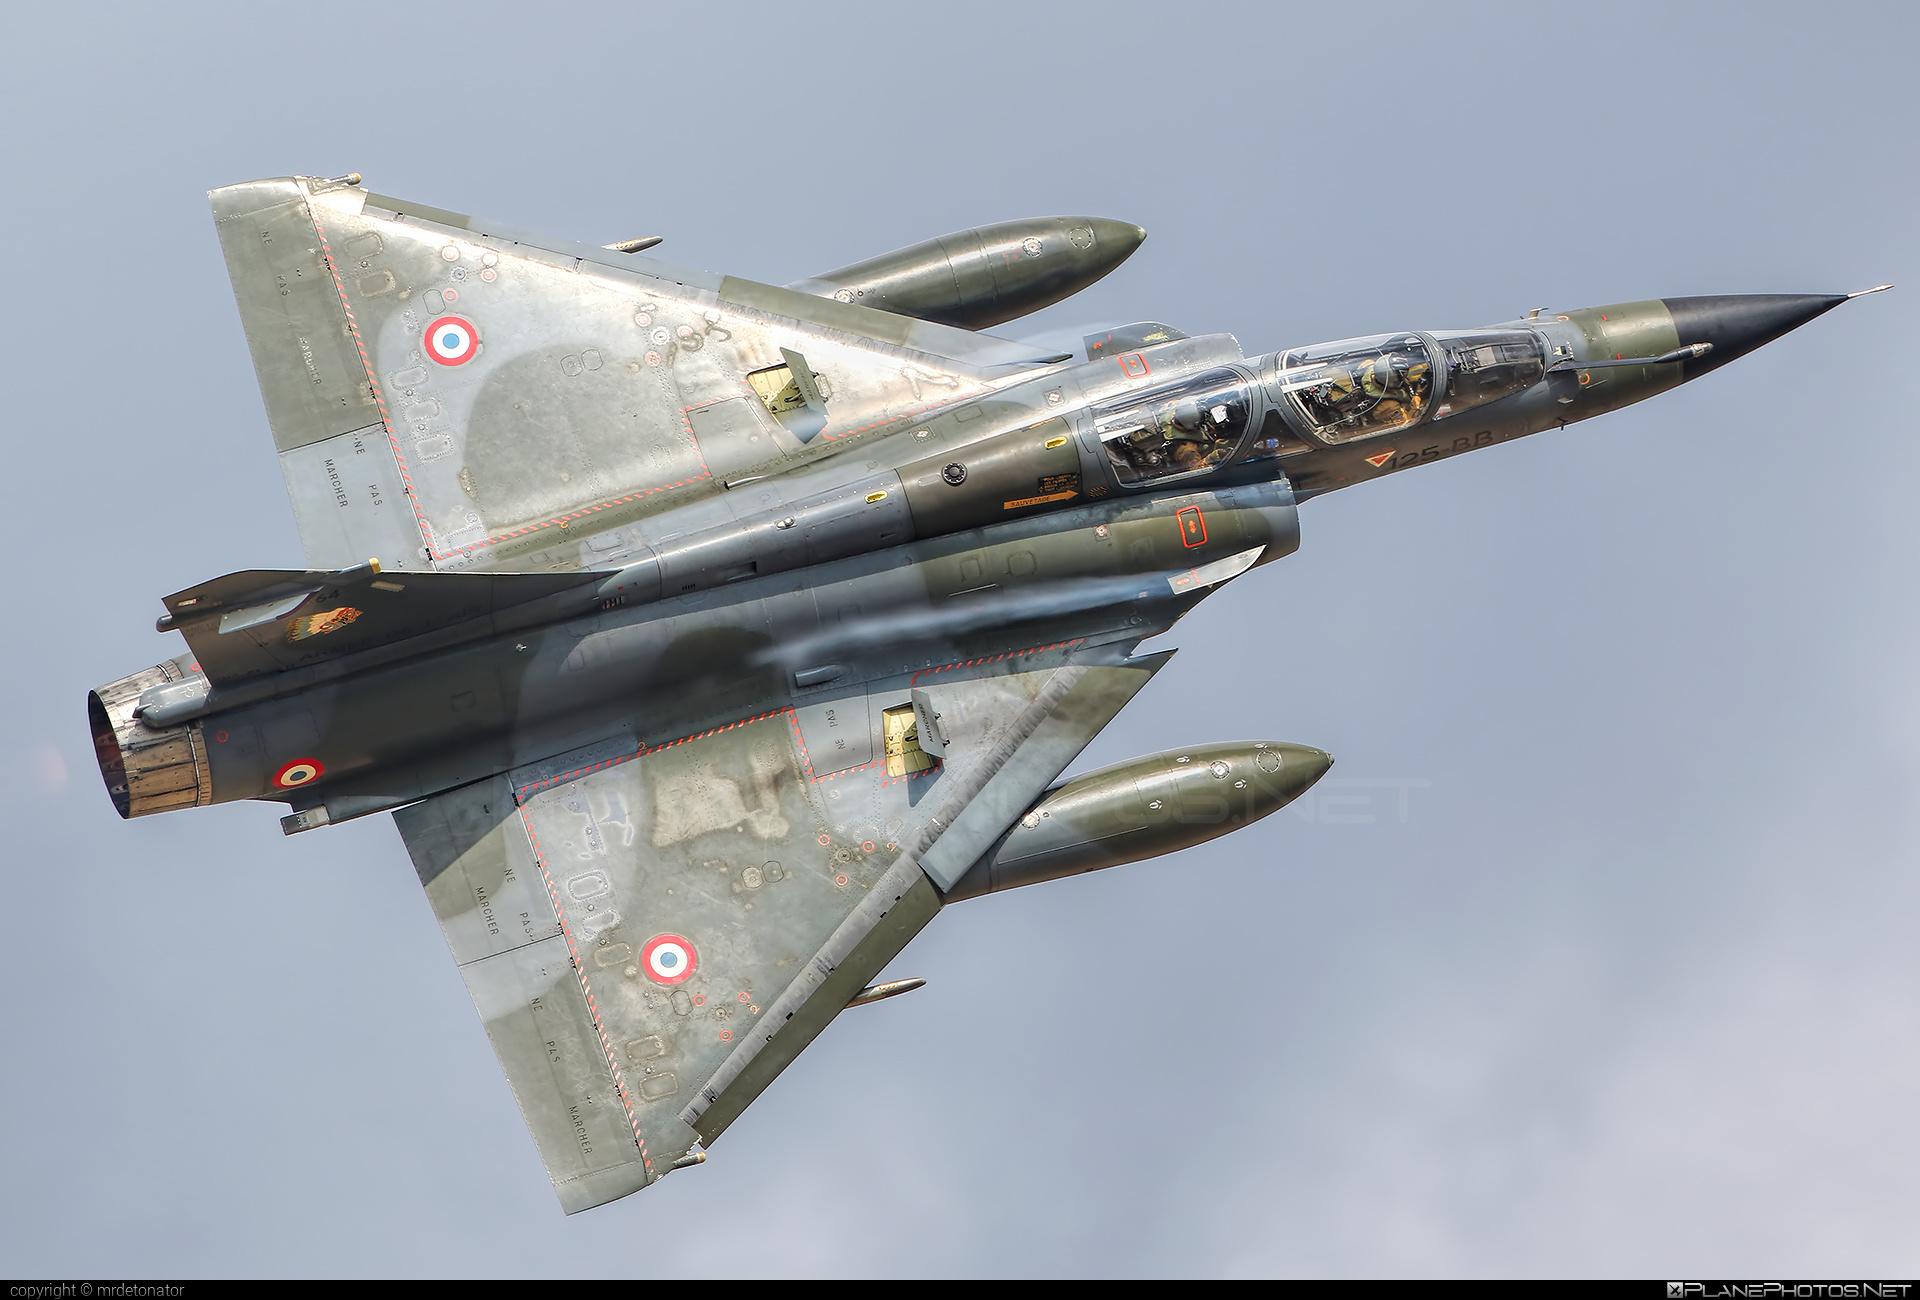 Dassault Mirage 2000N - 364 operated by Armée de l´Air (French Air Force) #DassaultMirage #DassaultMirage2000 #DassaultMirage2000n #armeedelair #dassault #frenchairforce #mirage #mirage2000 #mirage2000n #natodays #natodays2015